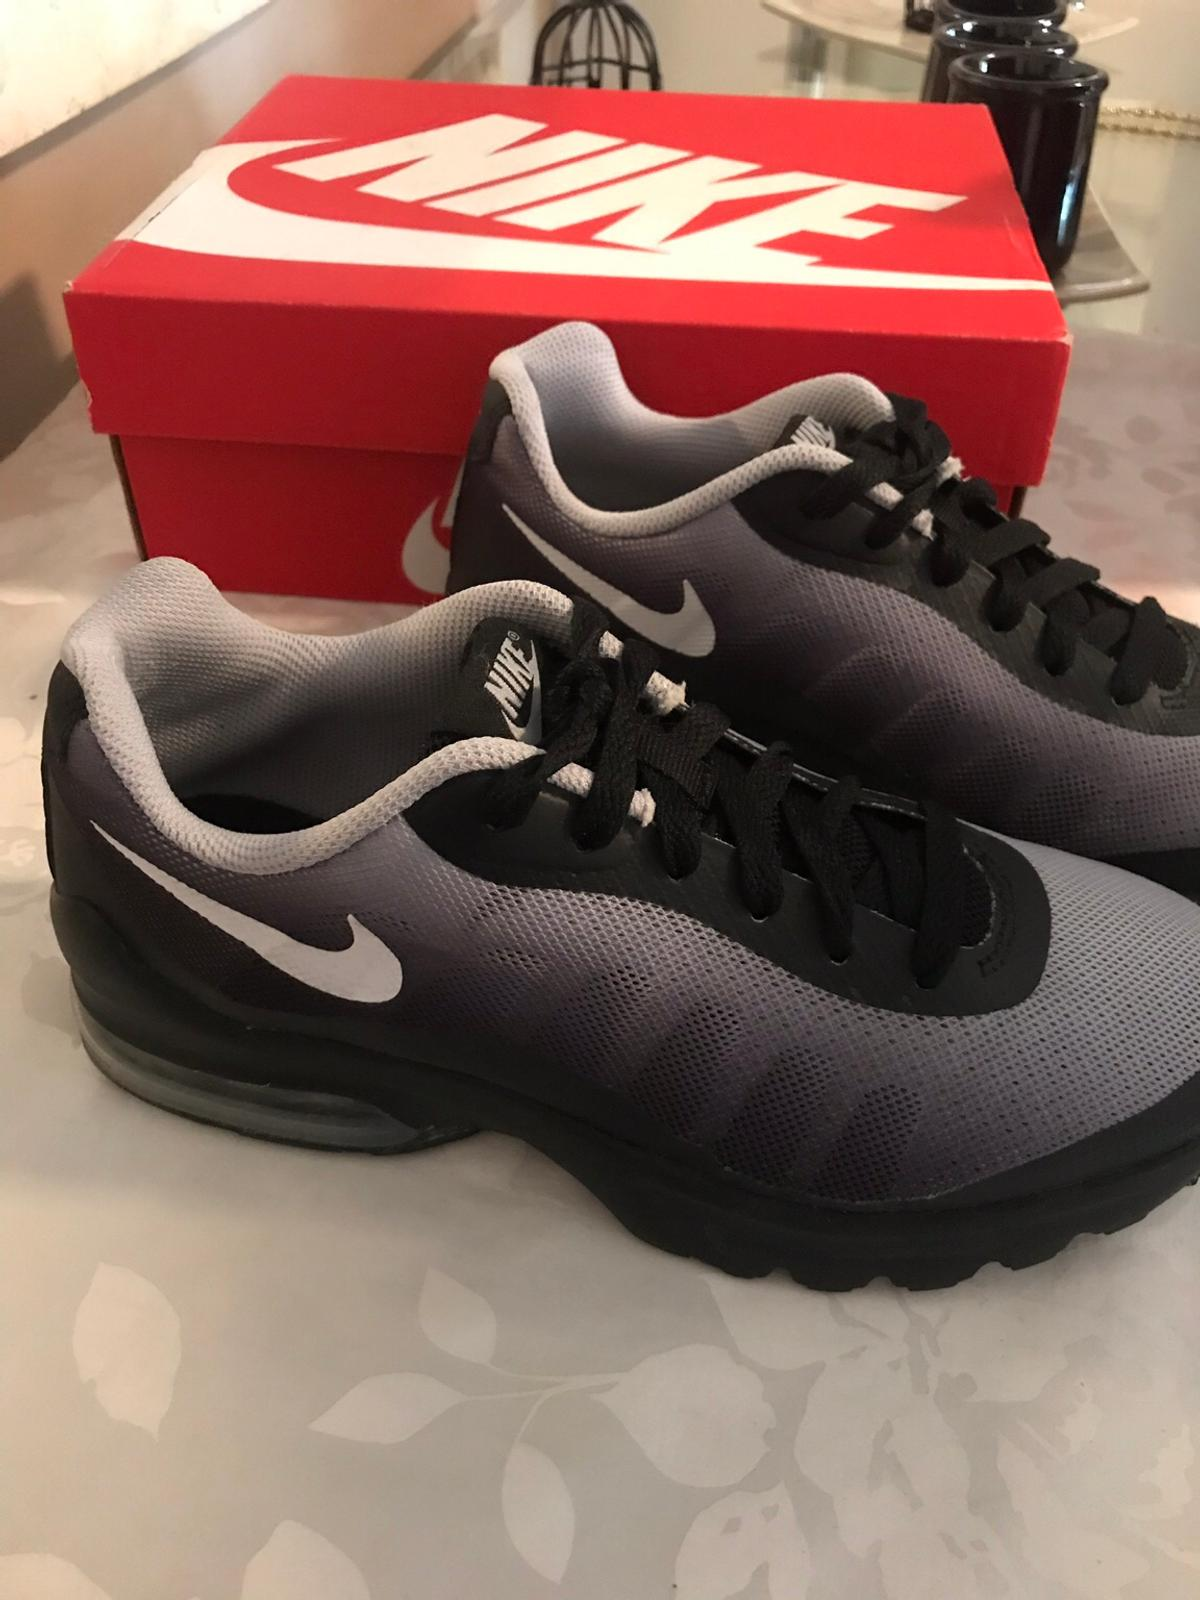 Nike AMax Size 5 in W13 London Borough of Brent for £29.00